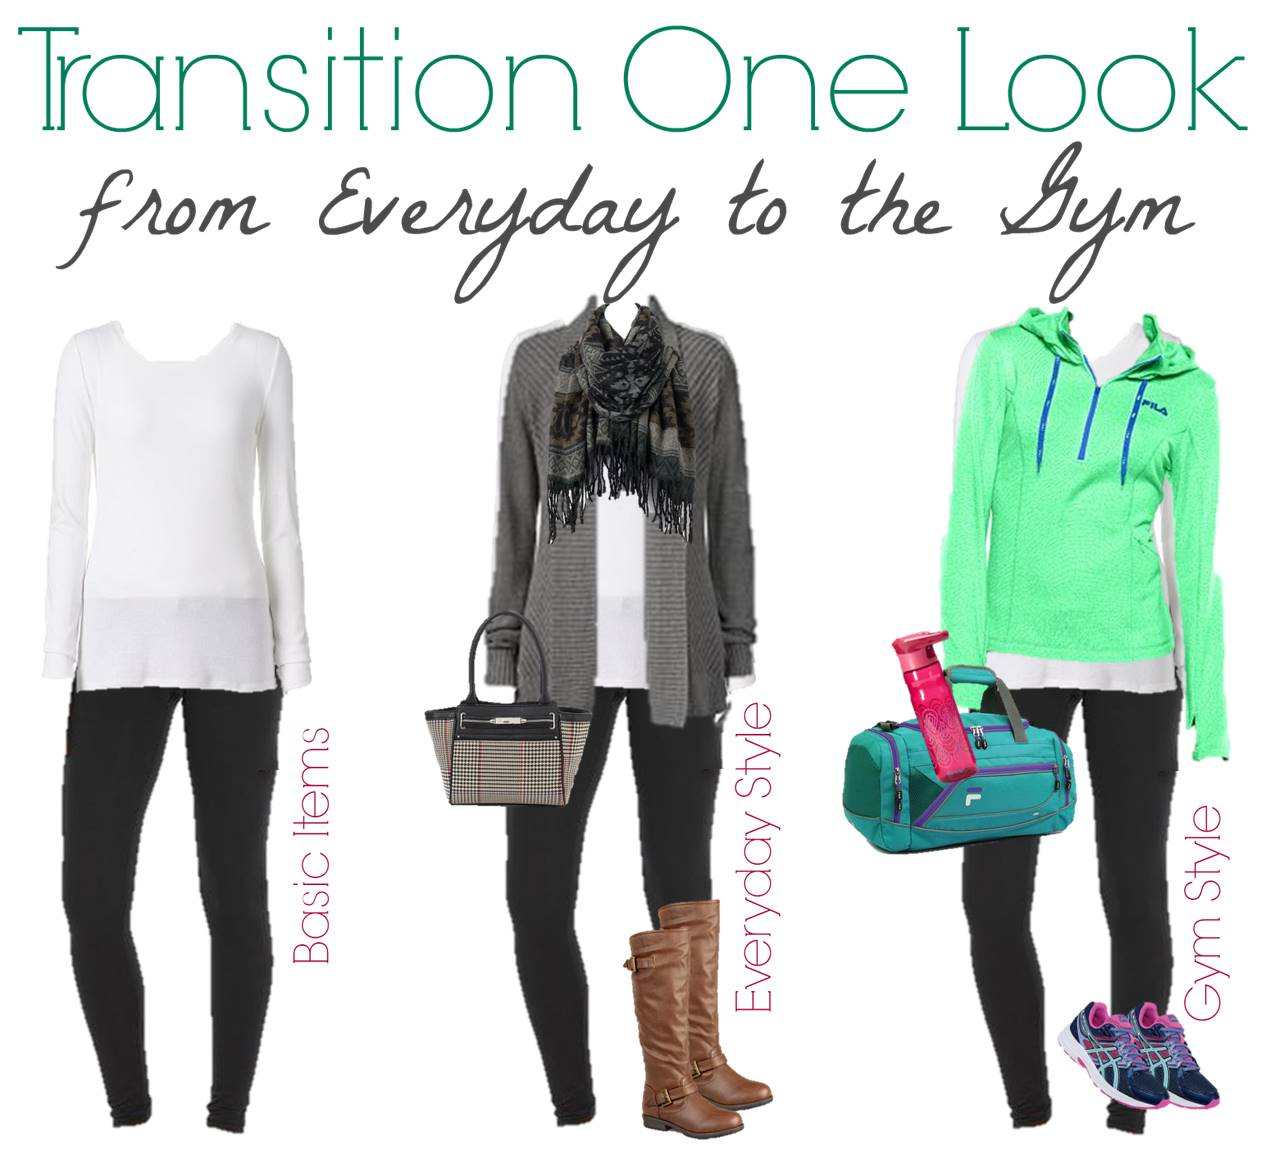 1.12 FASHION BOARD - Transition One Look from Everyday to Gym - Kohls (1)